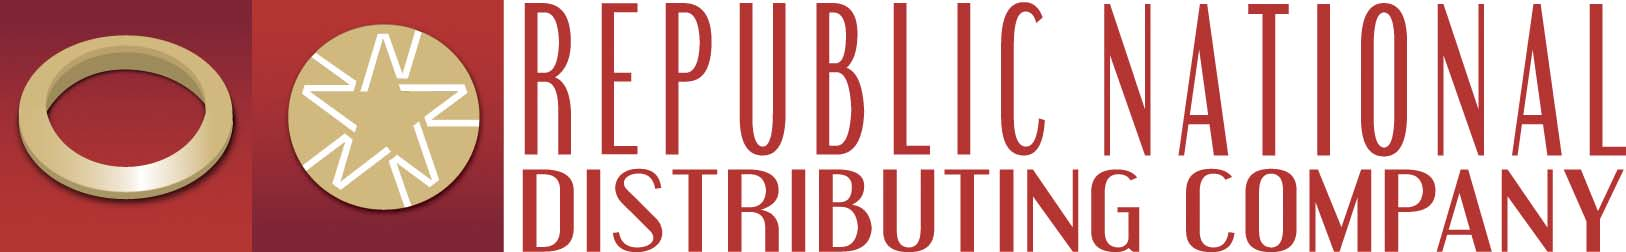 Republic National Distribution Company